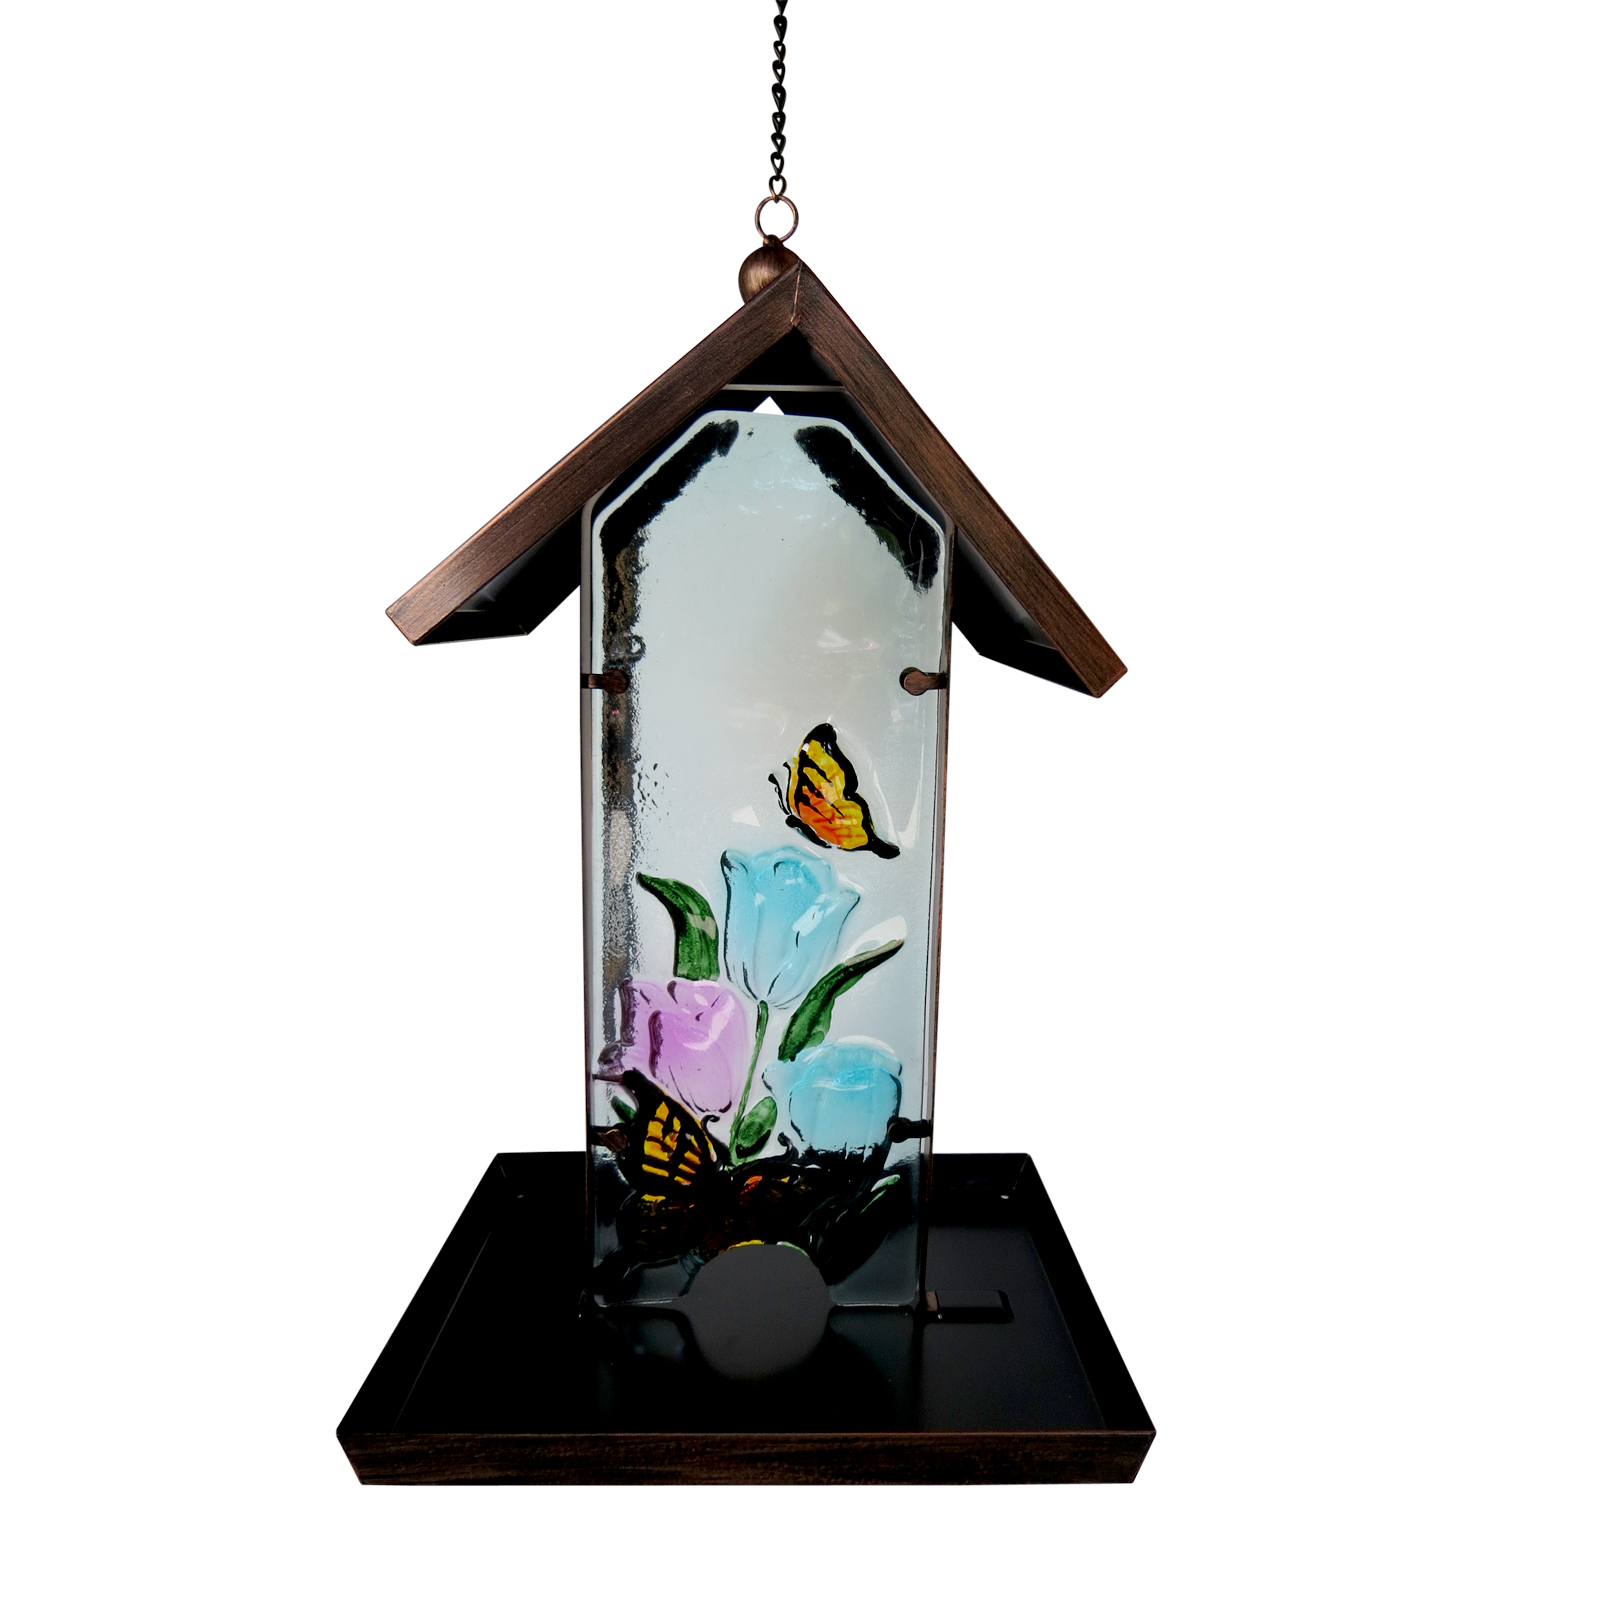 Hampton Direct Butterfly Bird House - Decorative & Great For Yard, Garden, Home at Sears.com